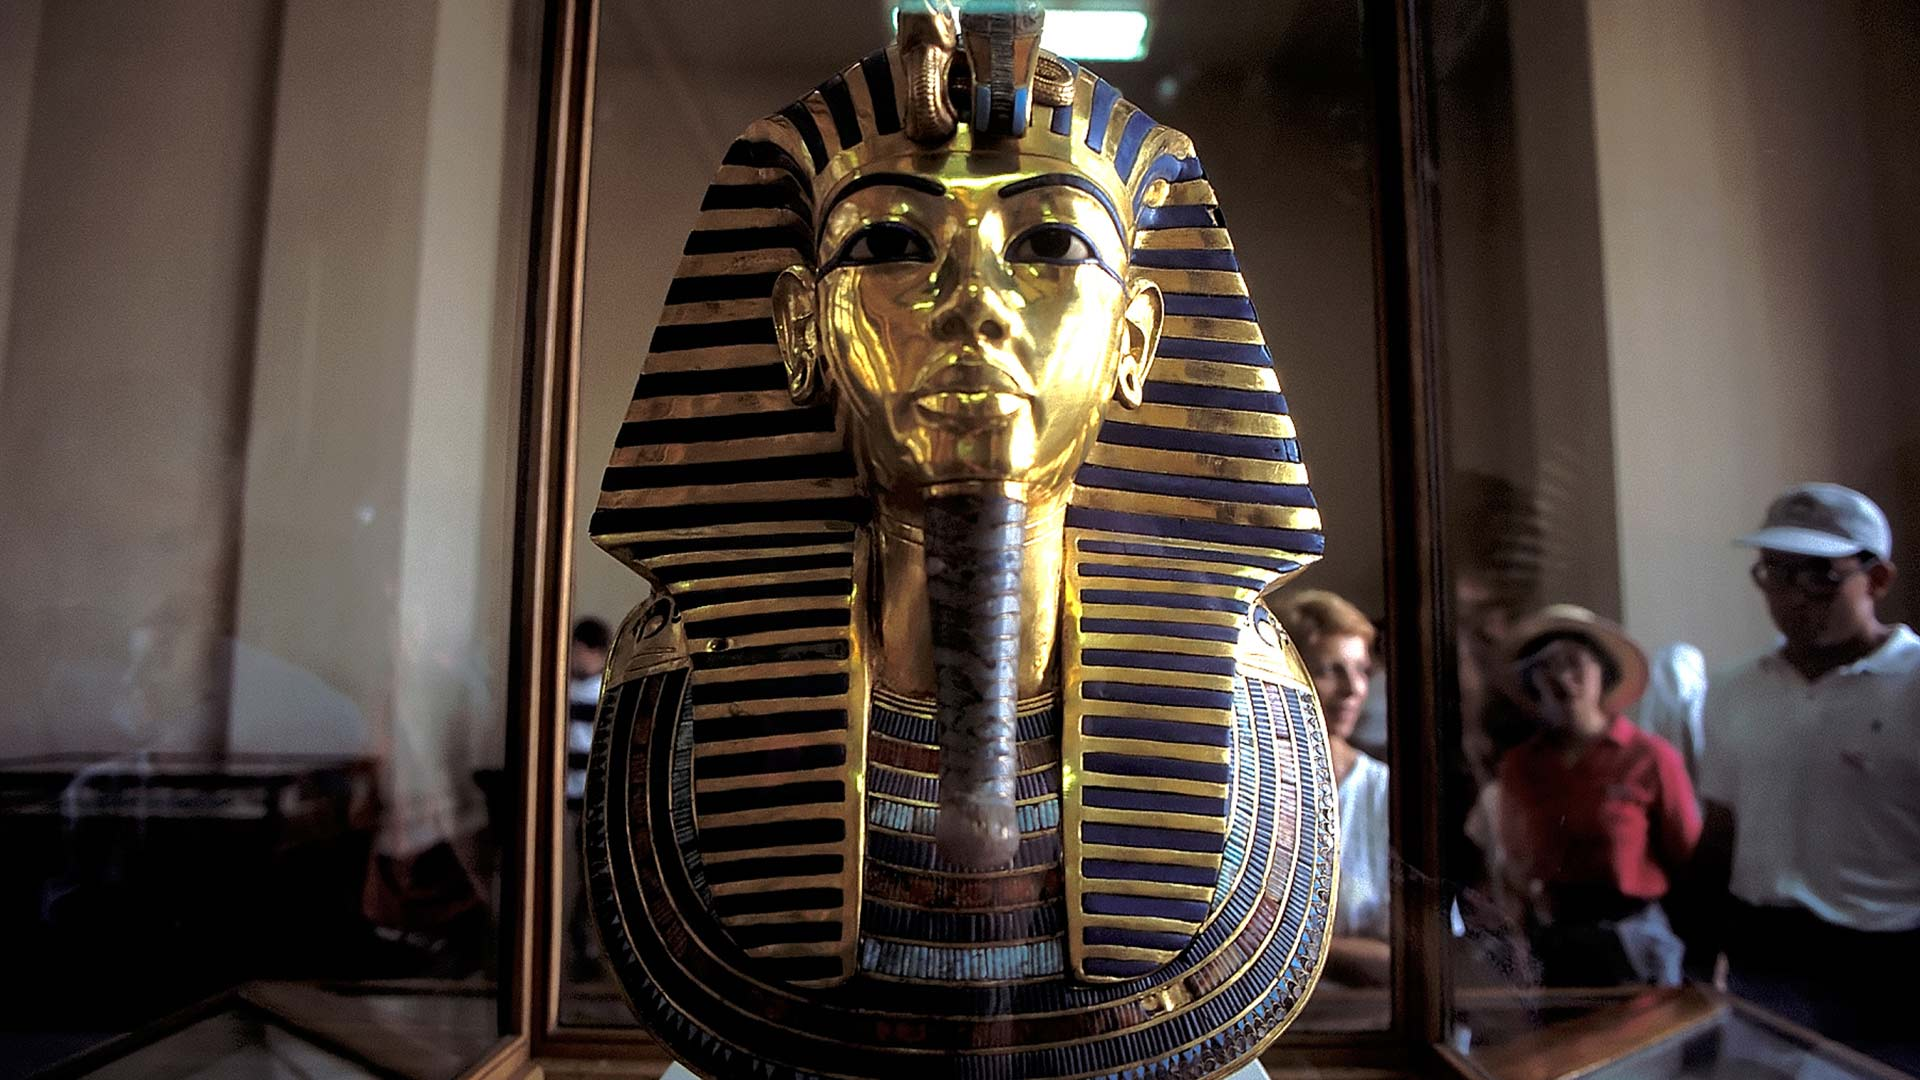 Tutankhamun's funerary mask on display at the Museum of Egyptian Antiquities, Cairo, Al Qahirah, Egypt